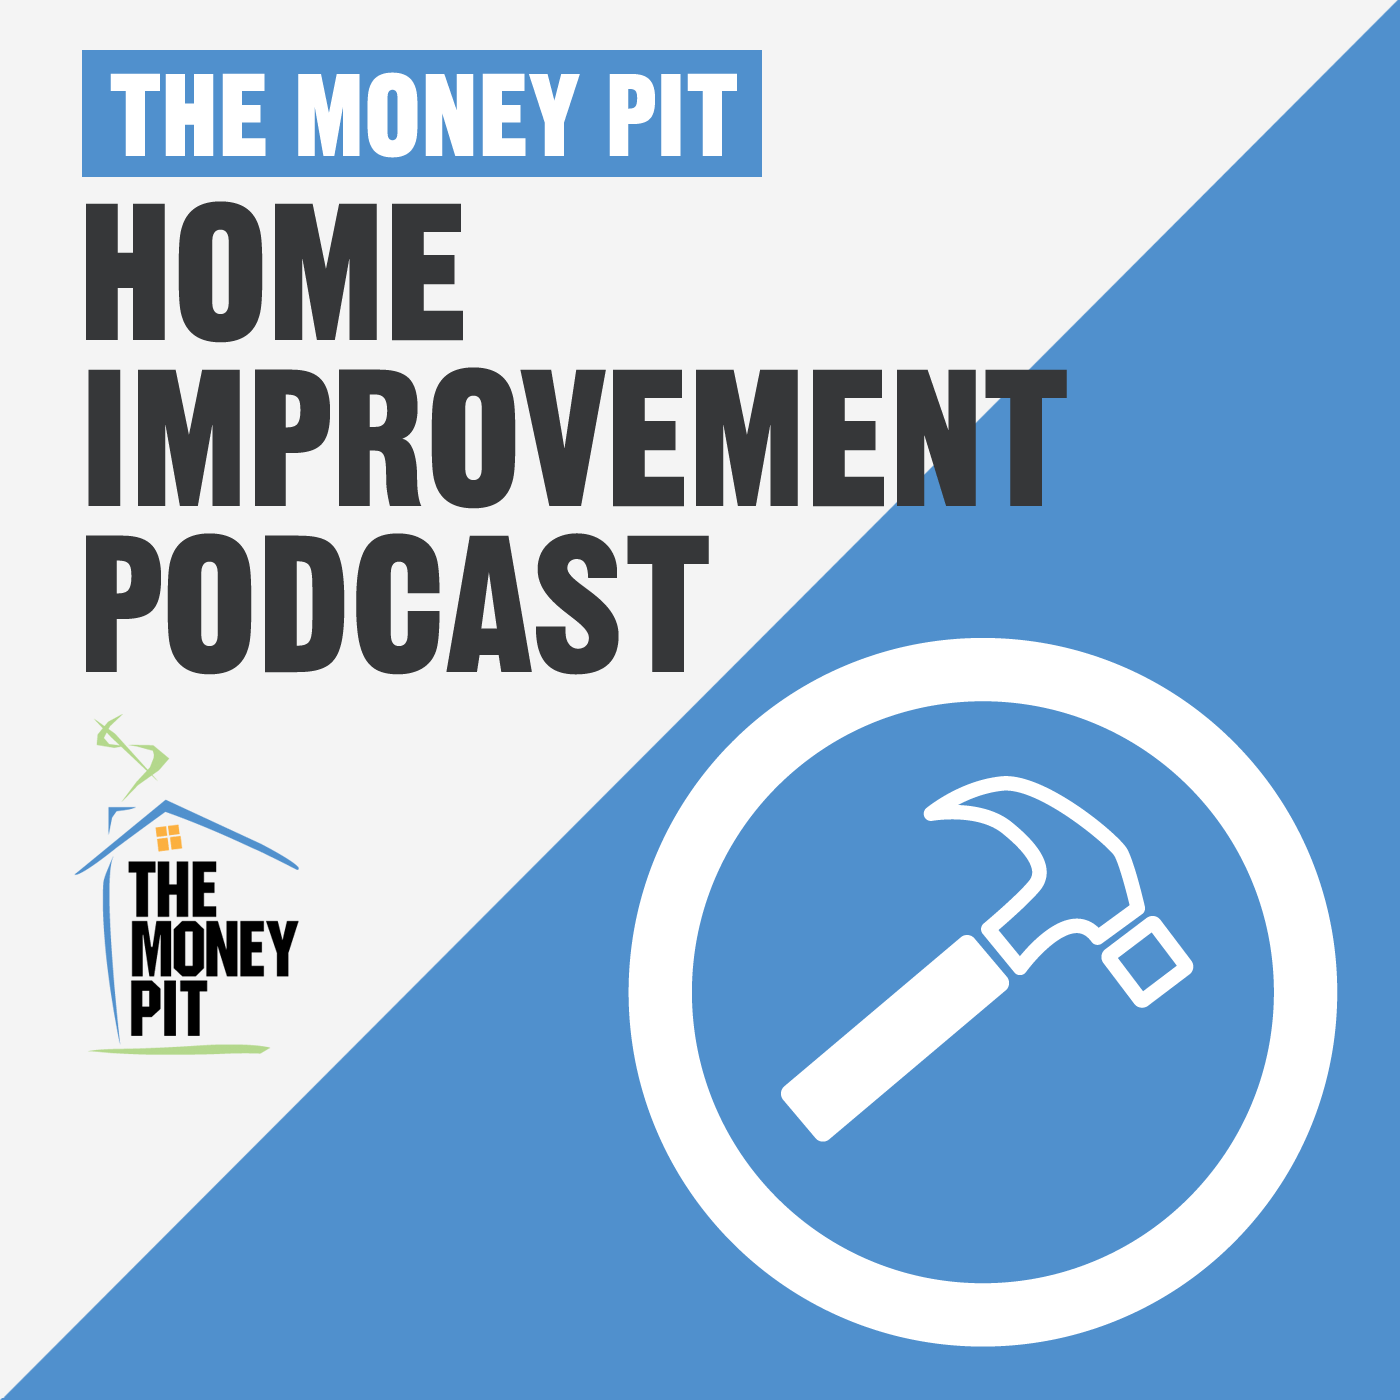 The Money Pit Podcast